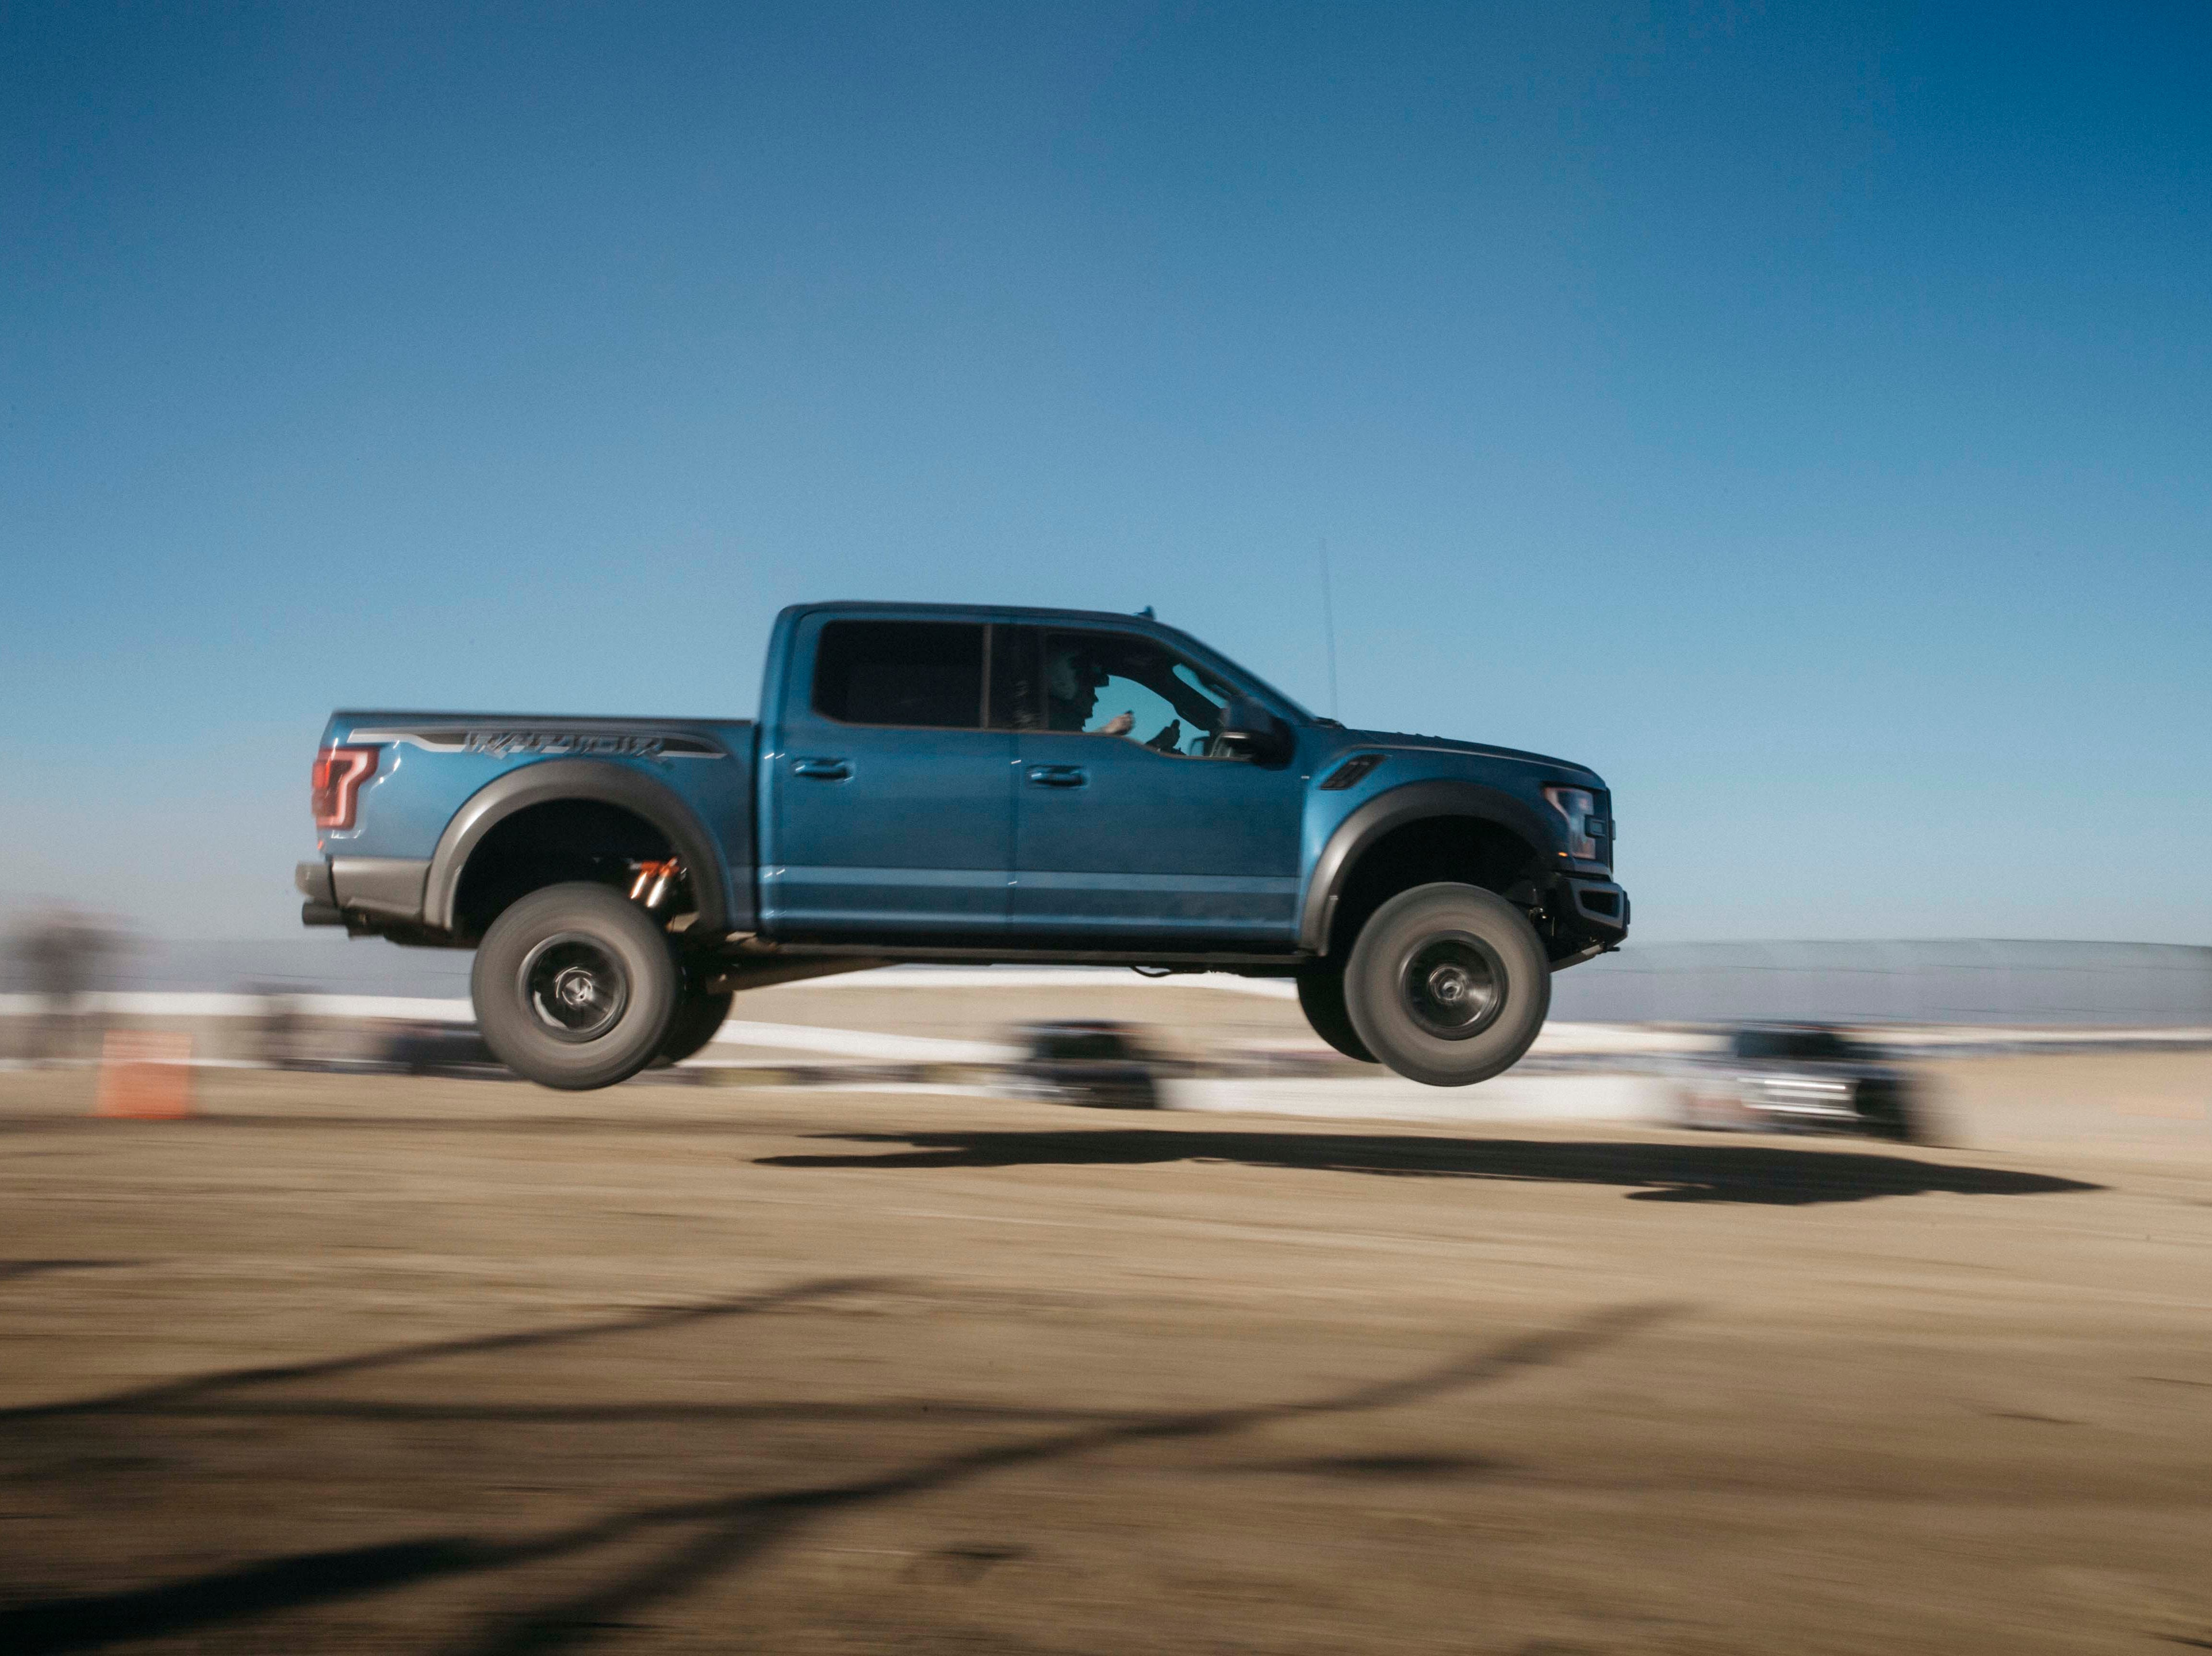 The 5,500-pound, 2019 Ford F-150 Raptor negotiates a jump at 60 mph —  landing without drama thanks to its robust chassis engineering and Fox Live Valve shocks.